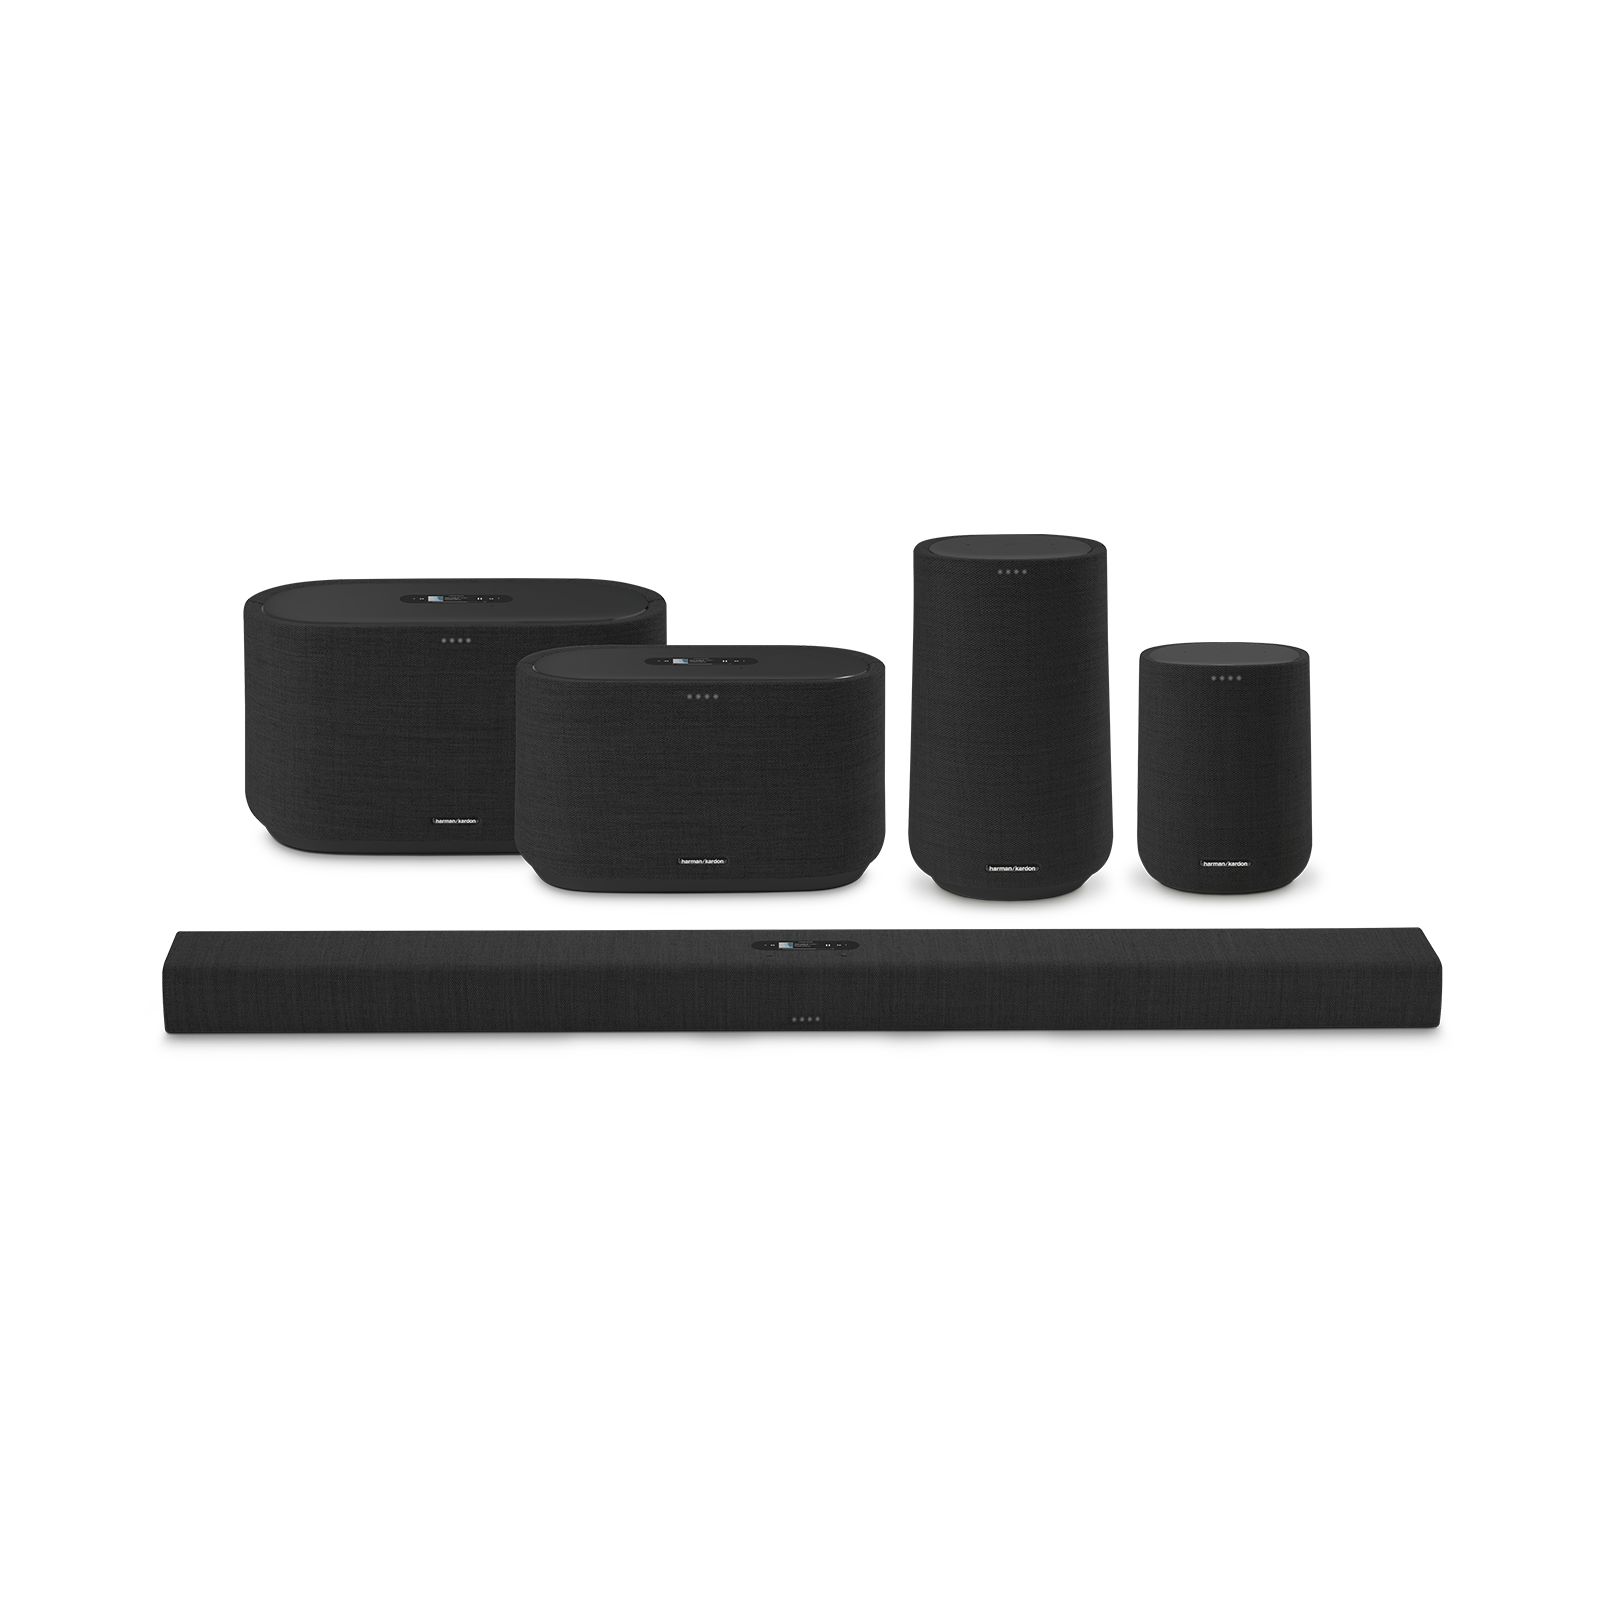 Harman Kardon Citation 500 - Black - Large Tabletop Smart Home Loudspeaker System - Detailshot 5